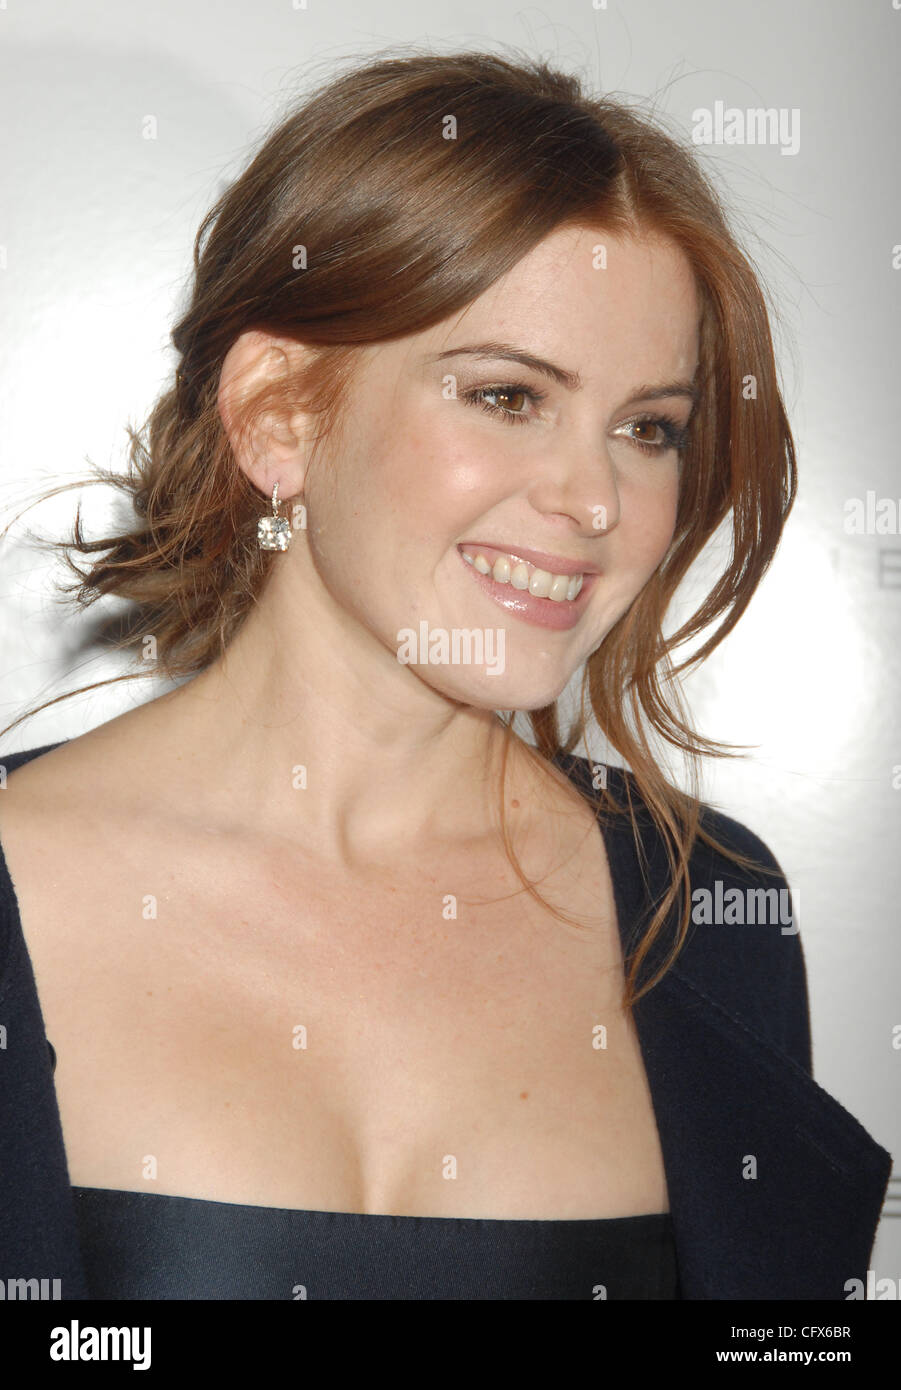 Mar 26, 2007 - New York, NY, USA - ISLA FISHER at a screening 'The Lookout' hosted by Elie Tahiri and Miramax - Stock Image